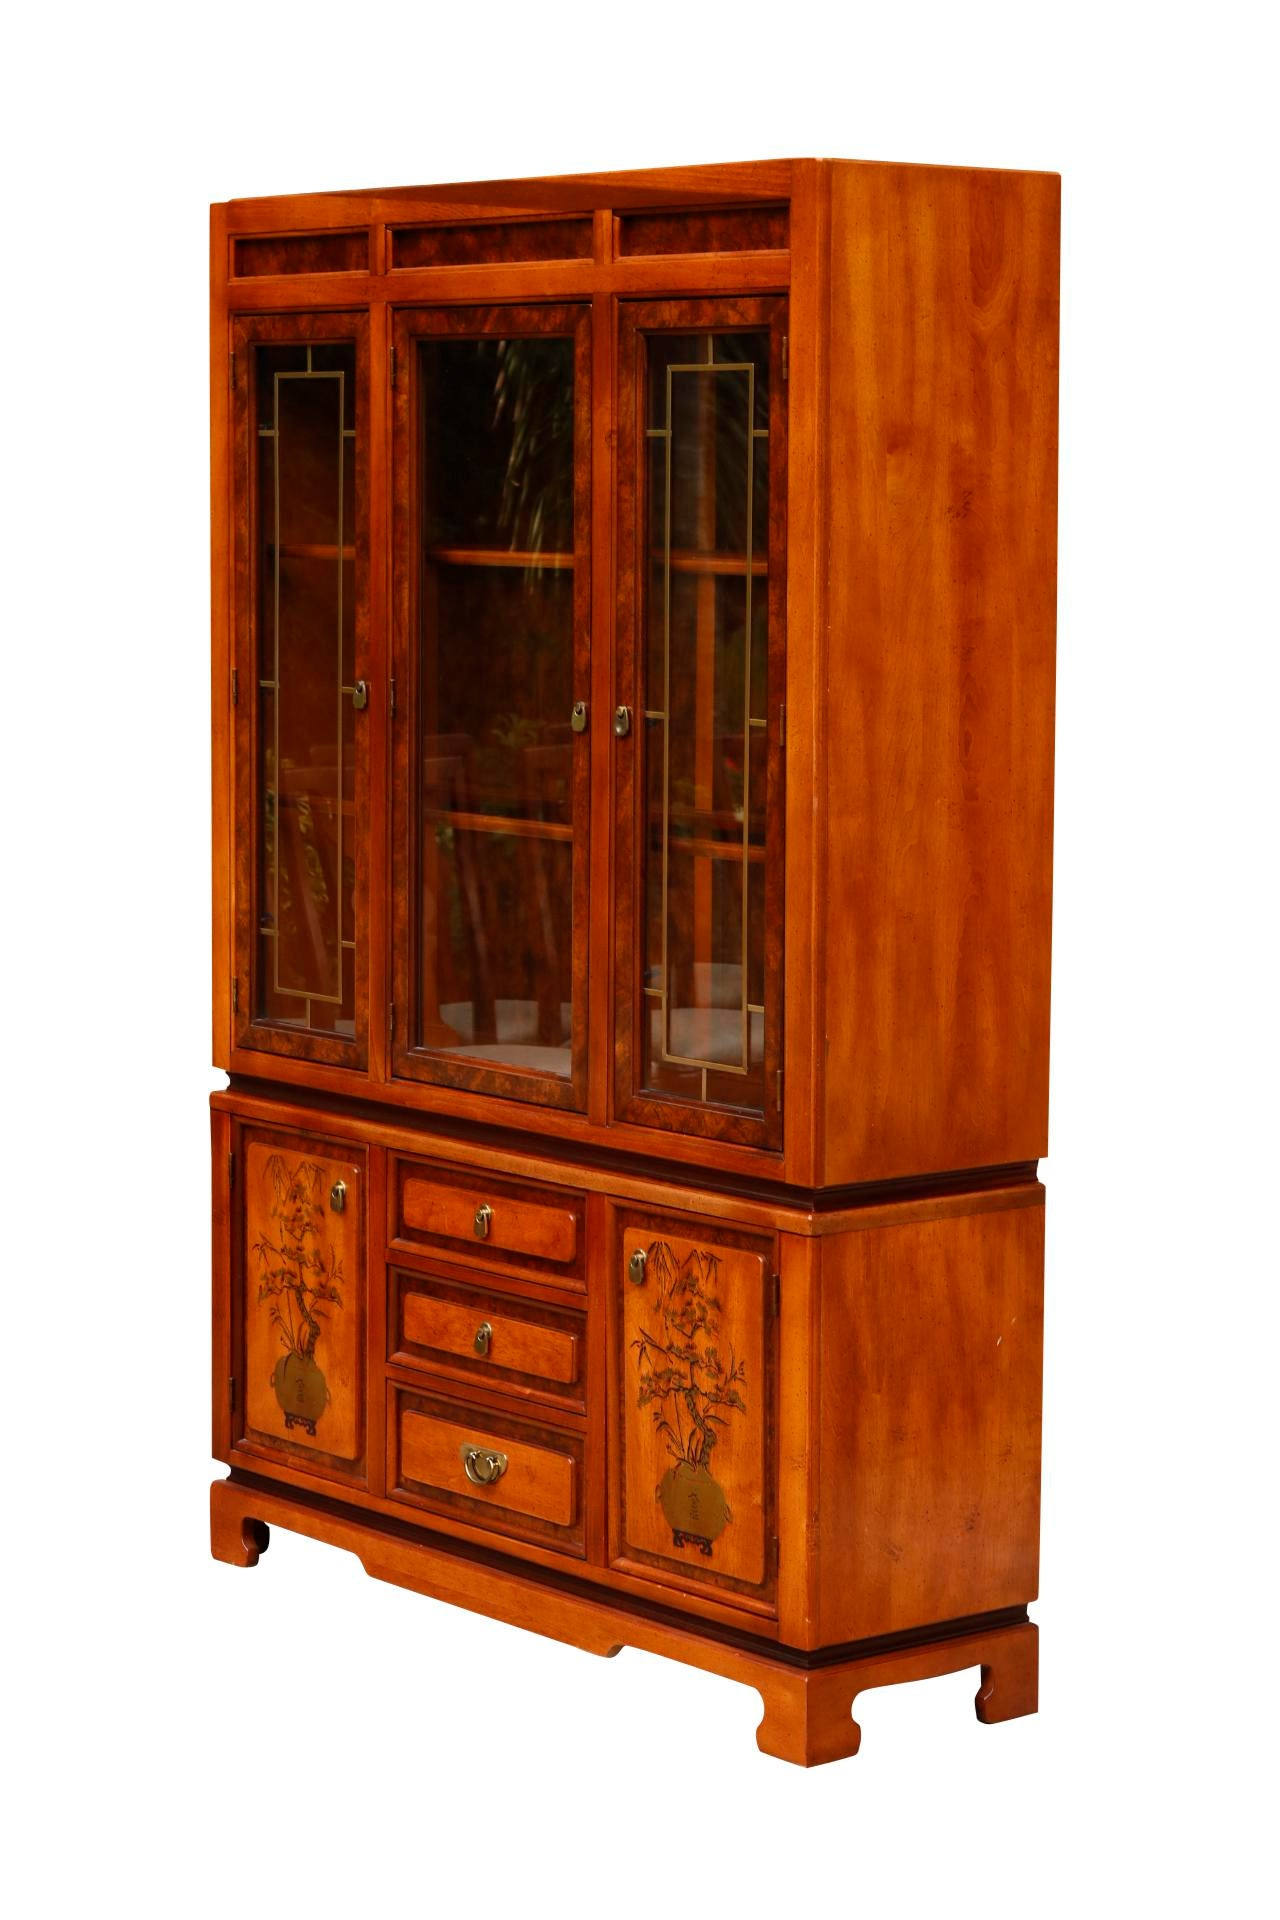 Ming Style China Cabinet By Bassett Furniture   Image 2 Of 7